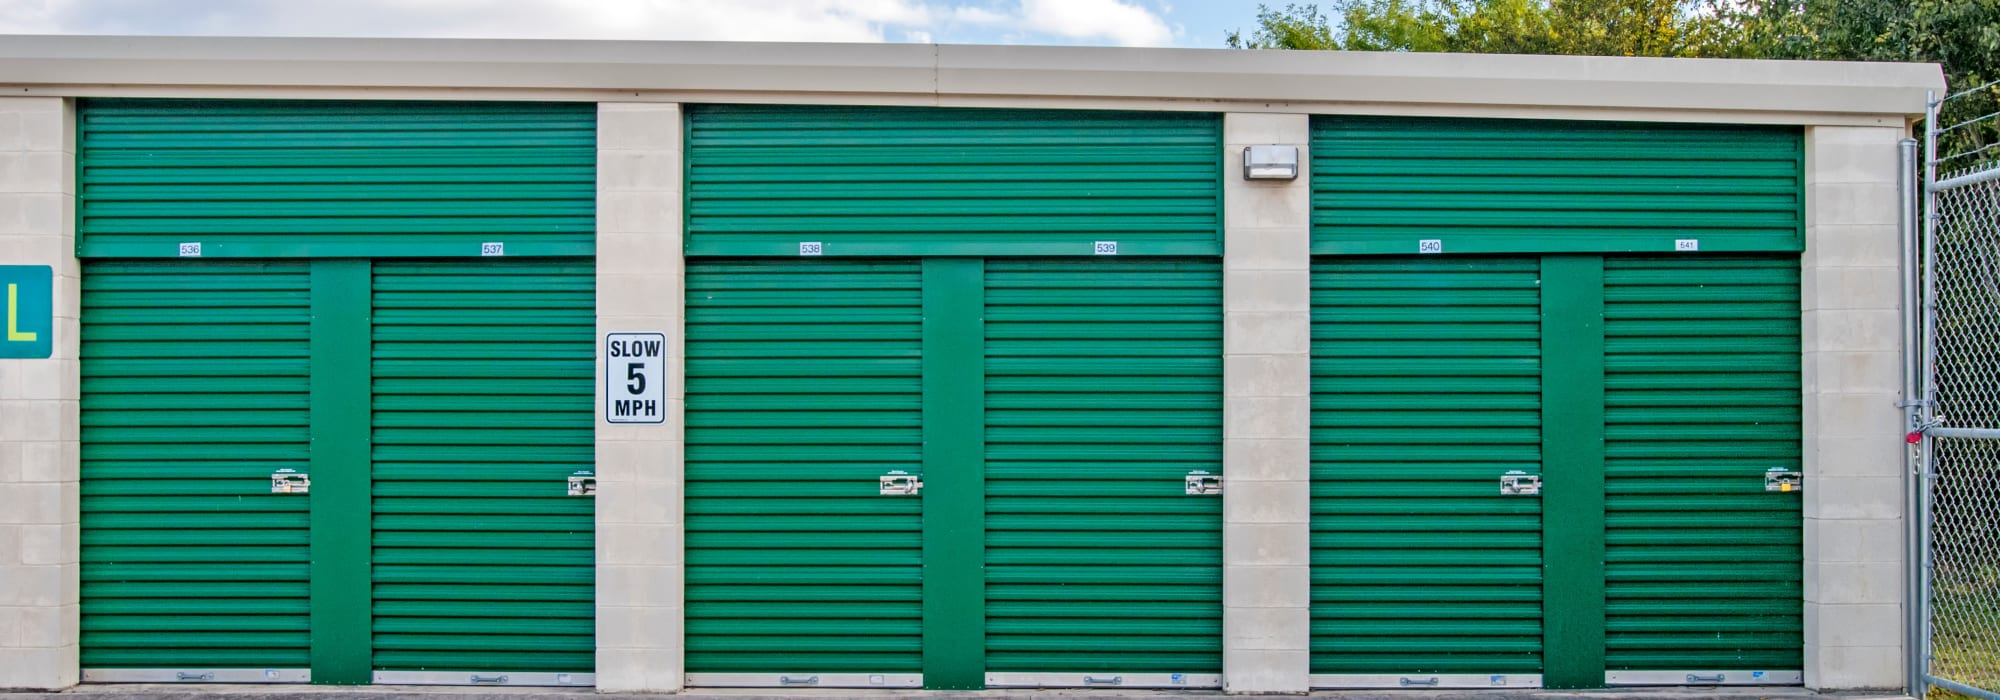 The exterior storage units at Lockaway Storage in San Antonio, Texas